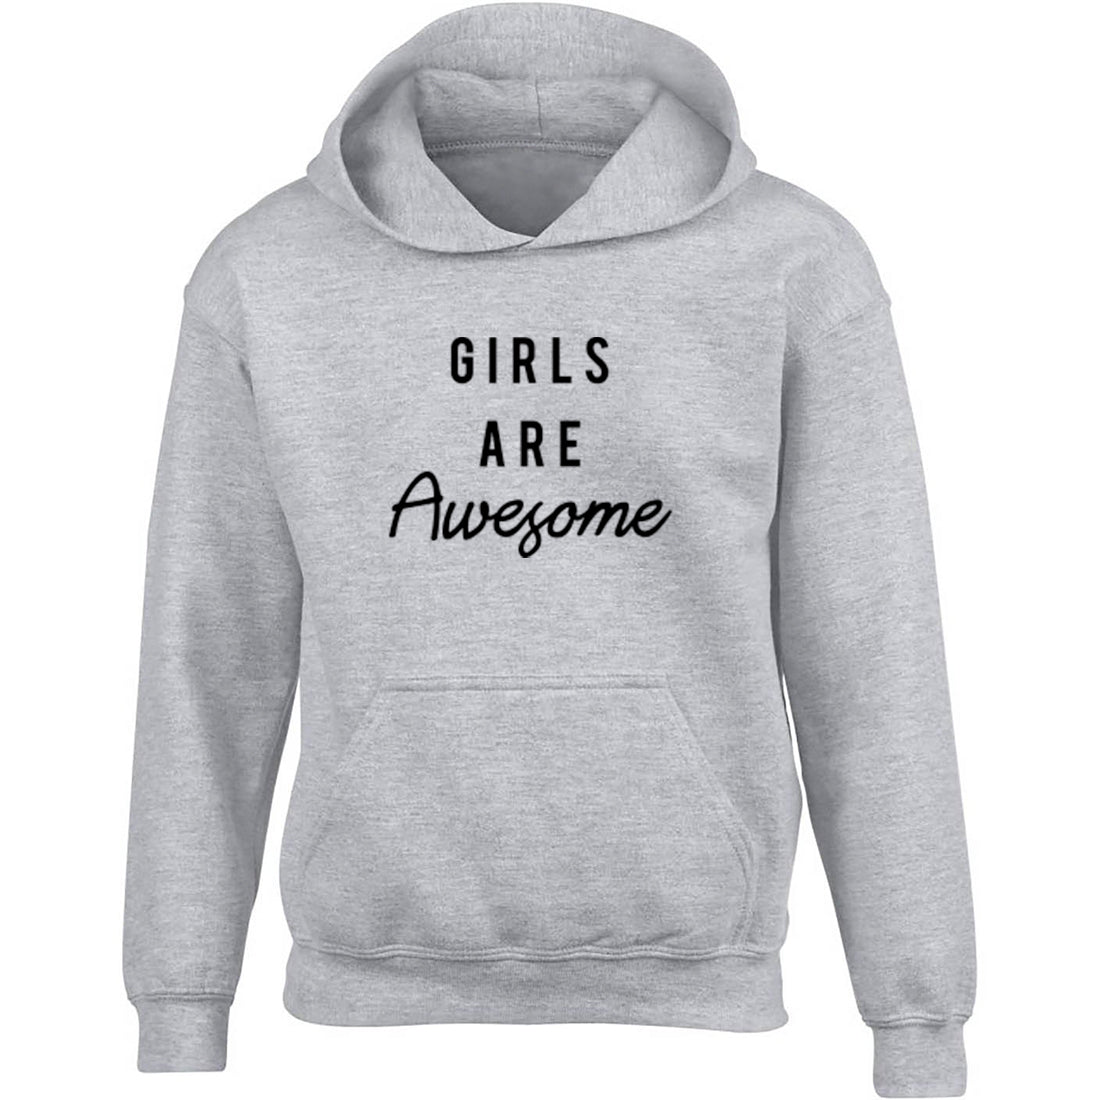 Girls Are Awesome Childrens Ages 3/4-12/14 Unisex Hoodie K2455